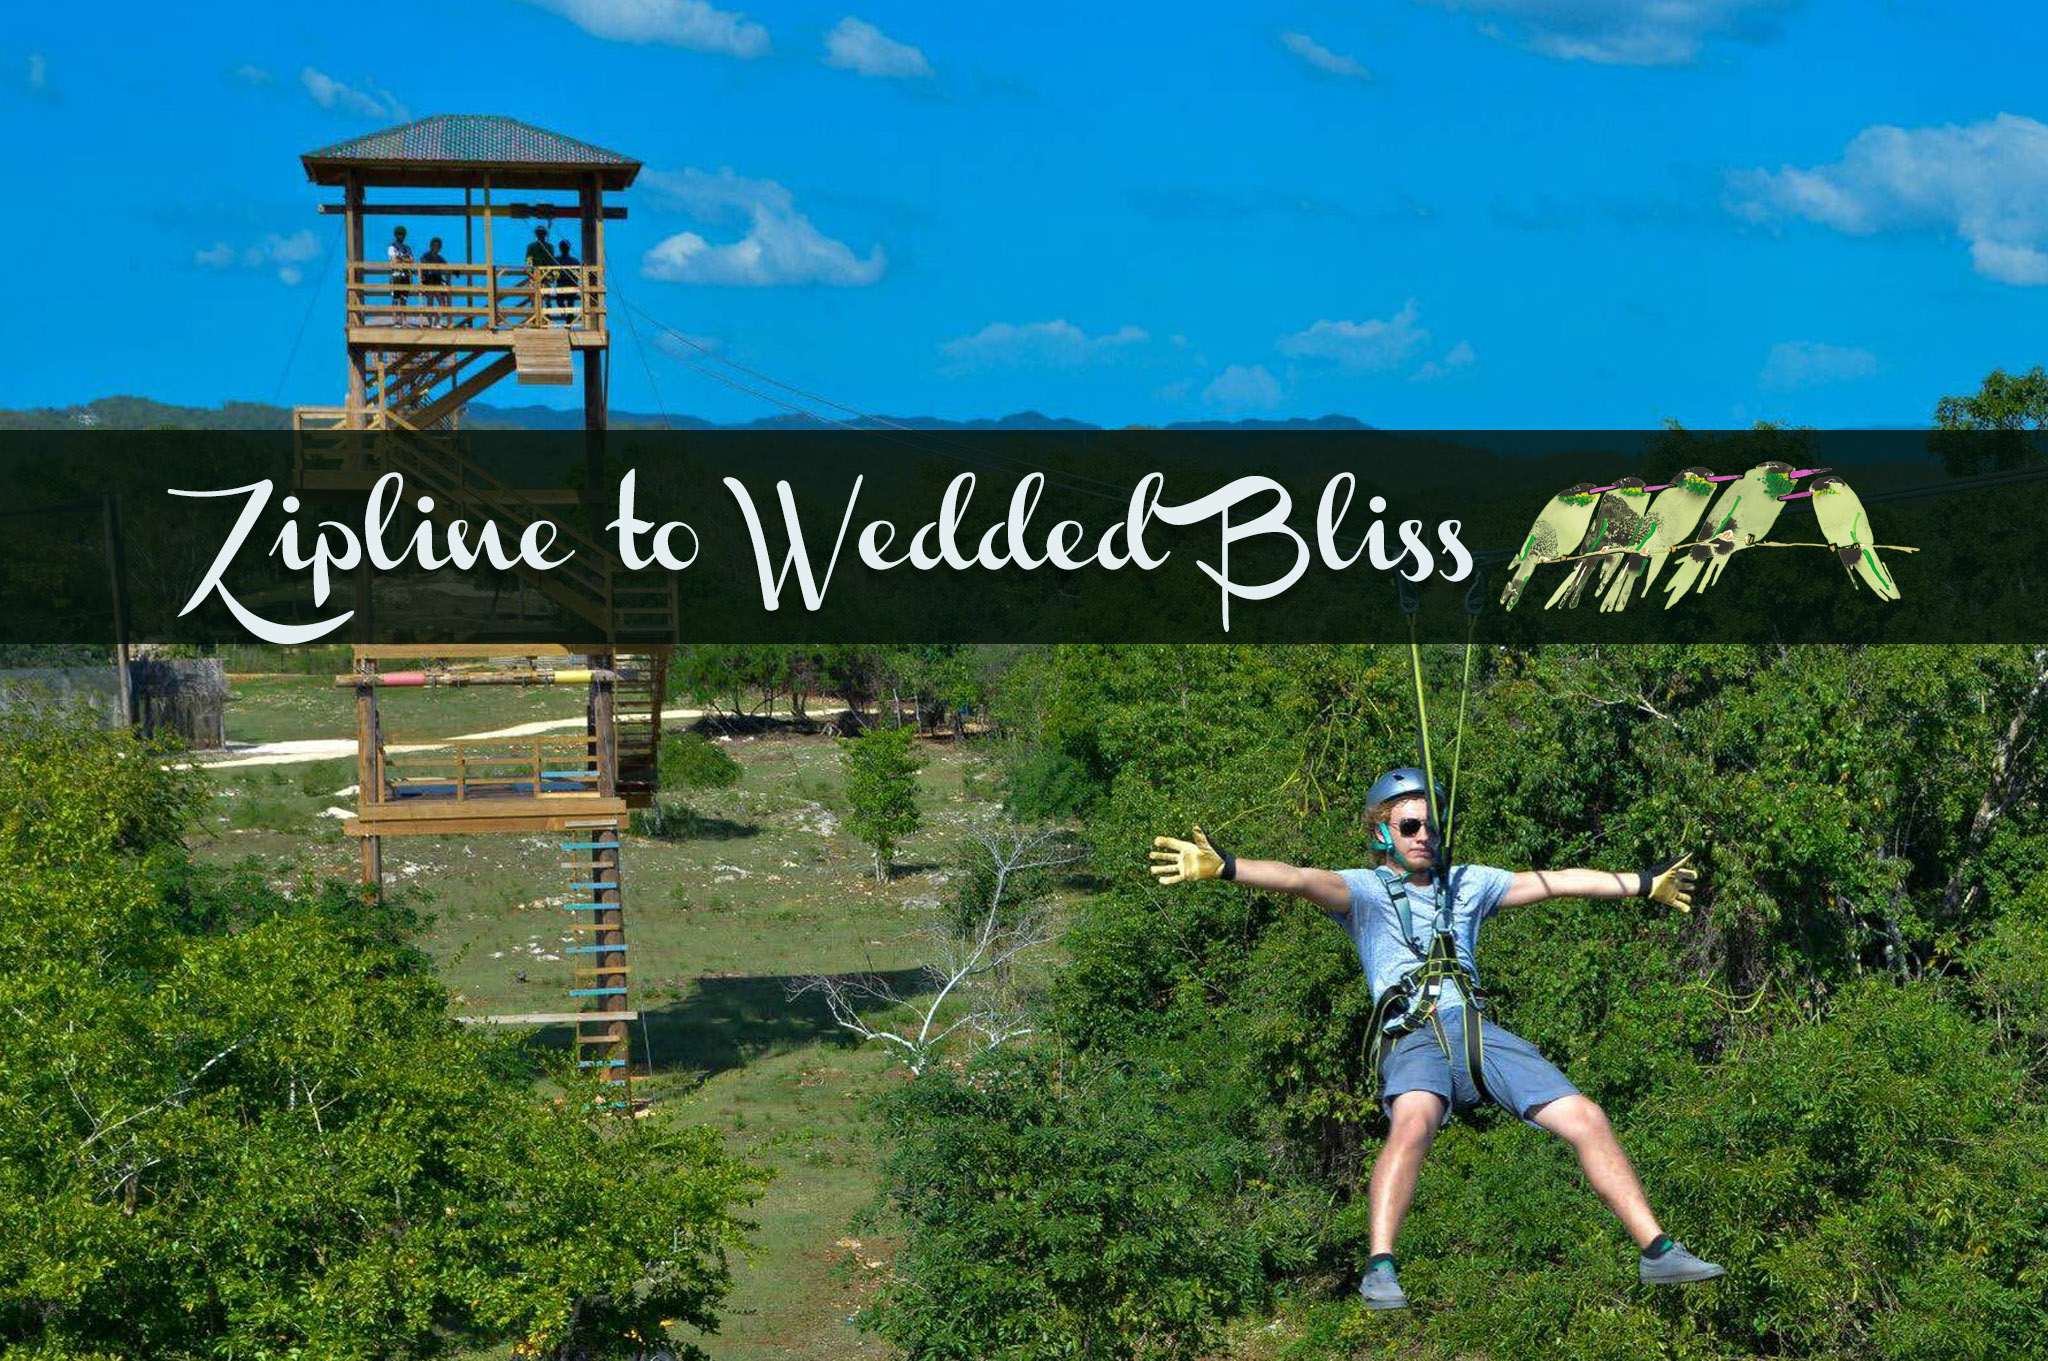 Zipline to Wedded Bliss - special deals in Negril, Jamaica